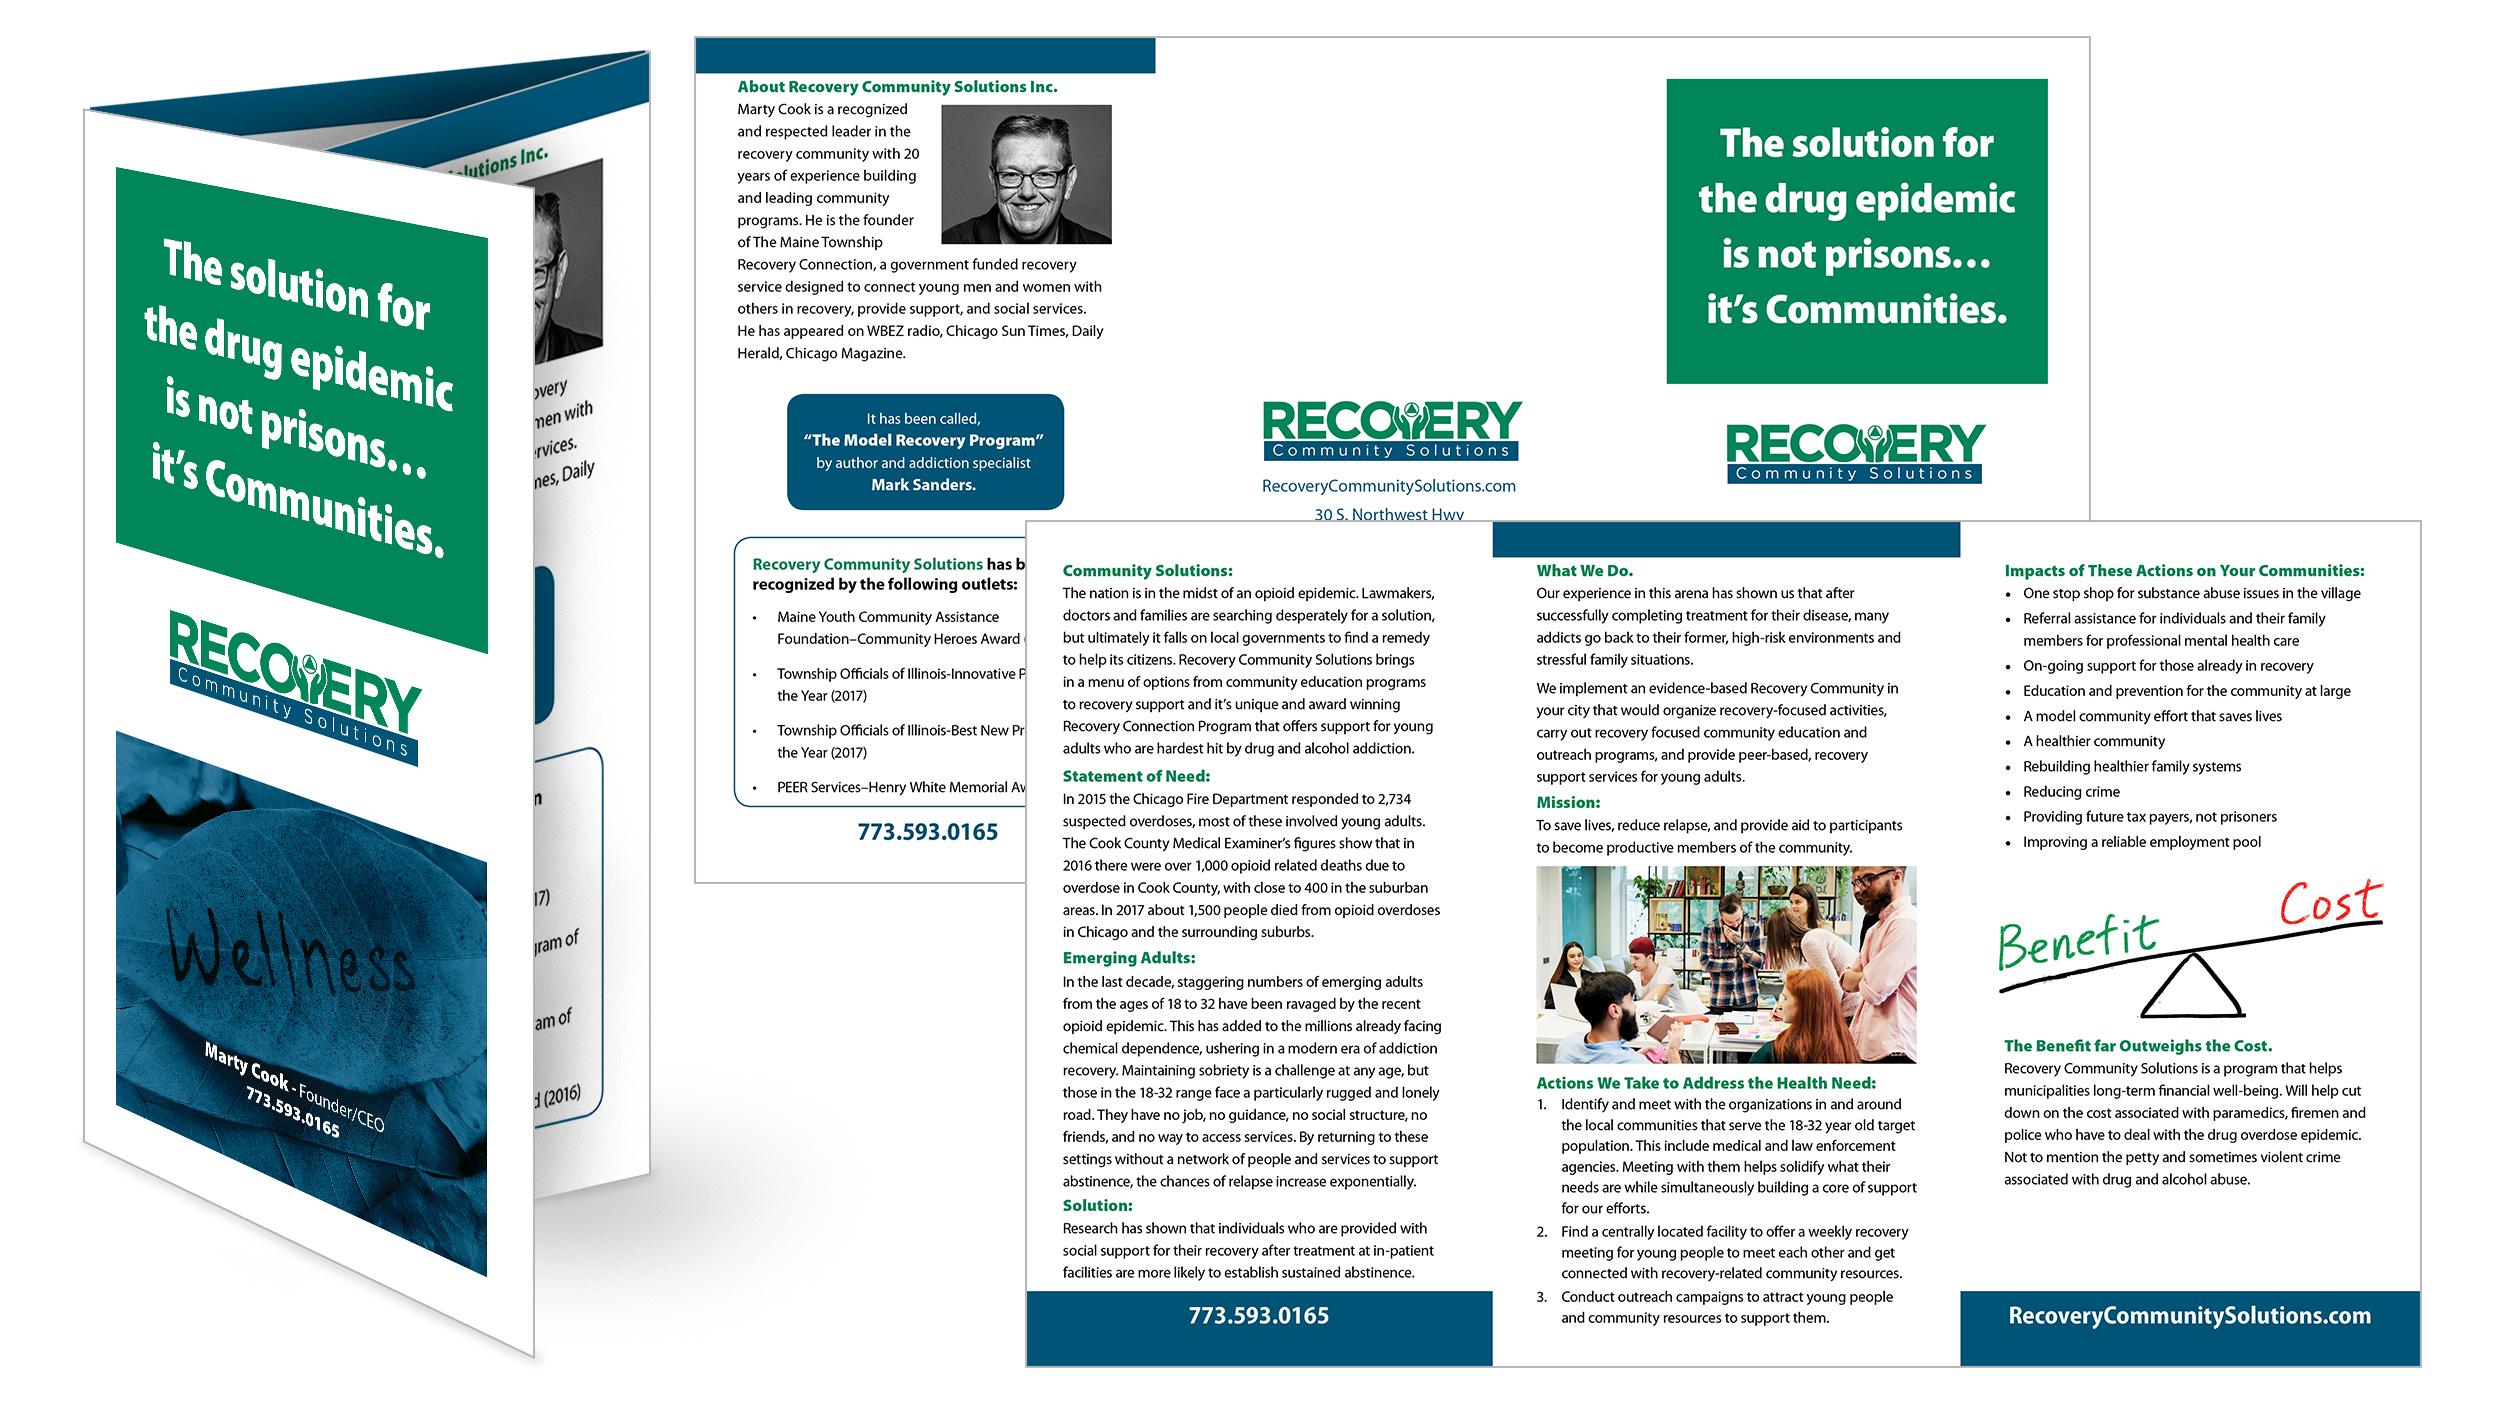 Recovery-Community-Solutions-tri-fold-brochure-Collateral-Material.jpg